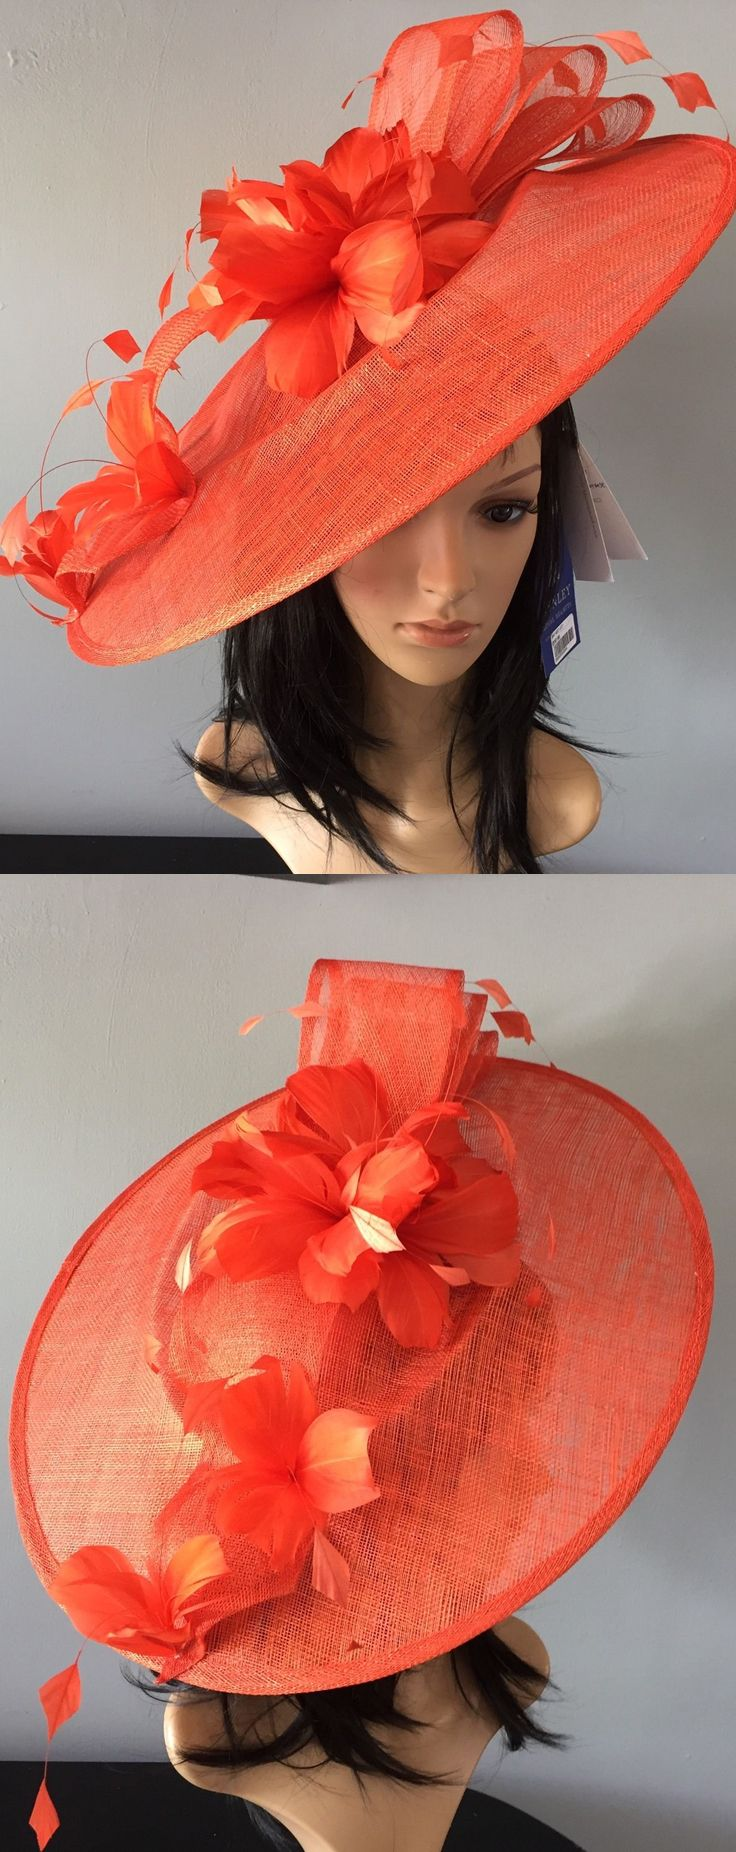 Peter Bettley Orange Large Feathered Saucer Slice Designer Hat Fascinator Hatinator, for Kentucky Derby, Del Mar, Epsom, Royal Ascot, Melbourne Cup. Day at the Races, Dubai World Cup fashion outfit ideas + inspiration. Wedding guest outfits, Mother of the bride. Fashions on the Field. #kentuckyderby #royalascot #outfits #fascinators #springwedding #ascotoutfits #weddingguest  #millinery #derbyoutfits #fashion #ascothats #derbyhats #affiliatelink #weddinghats #motherofthebride…